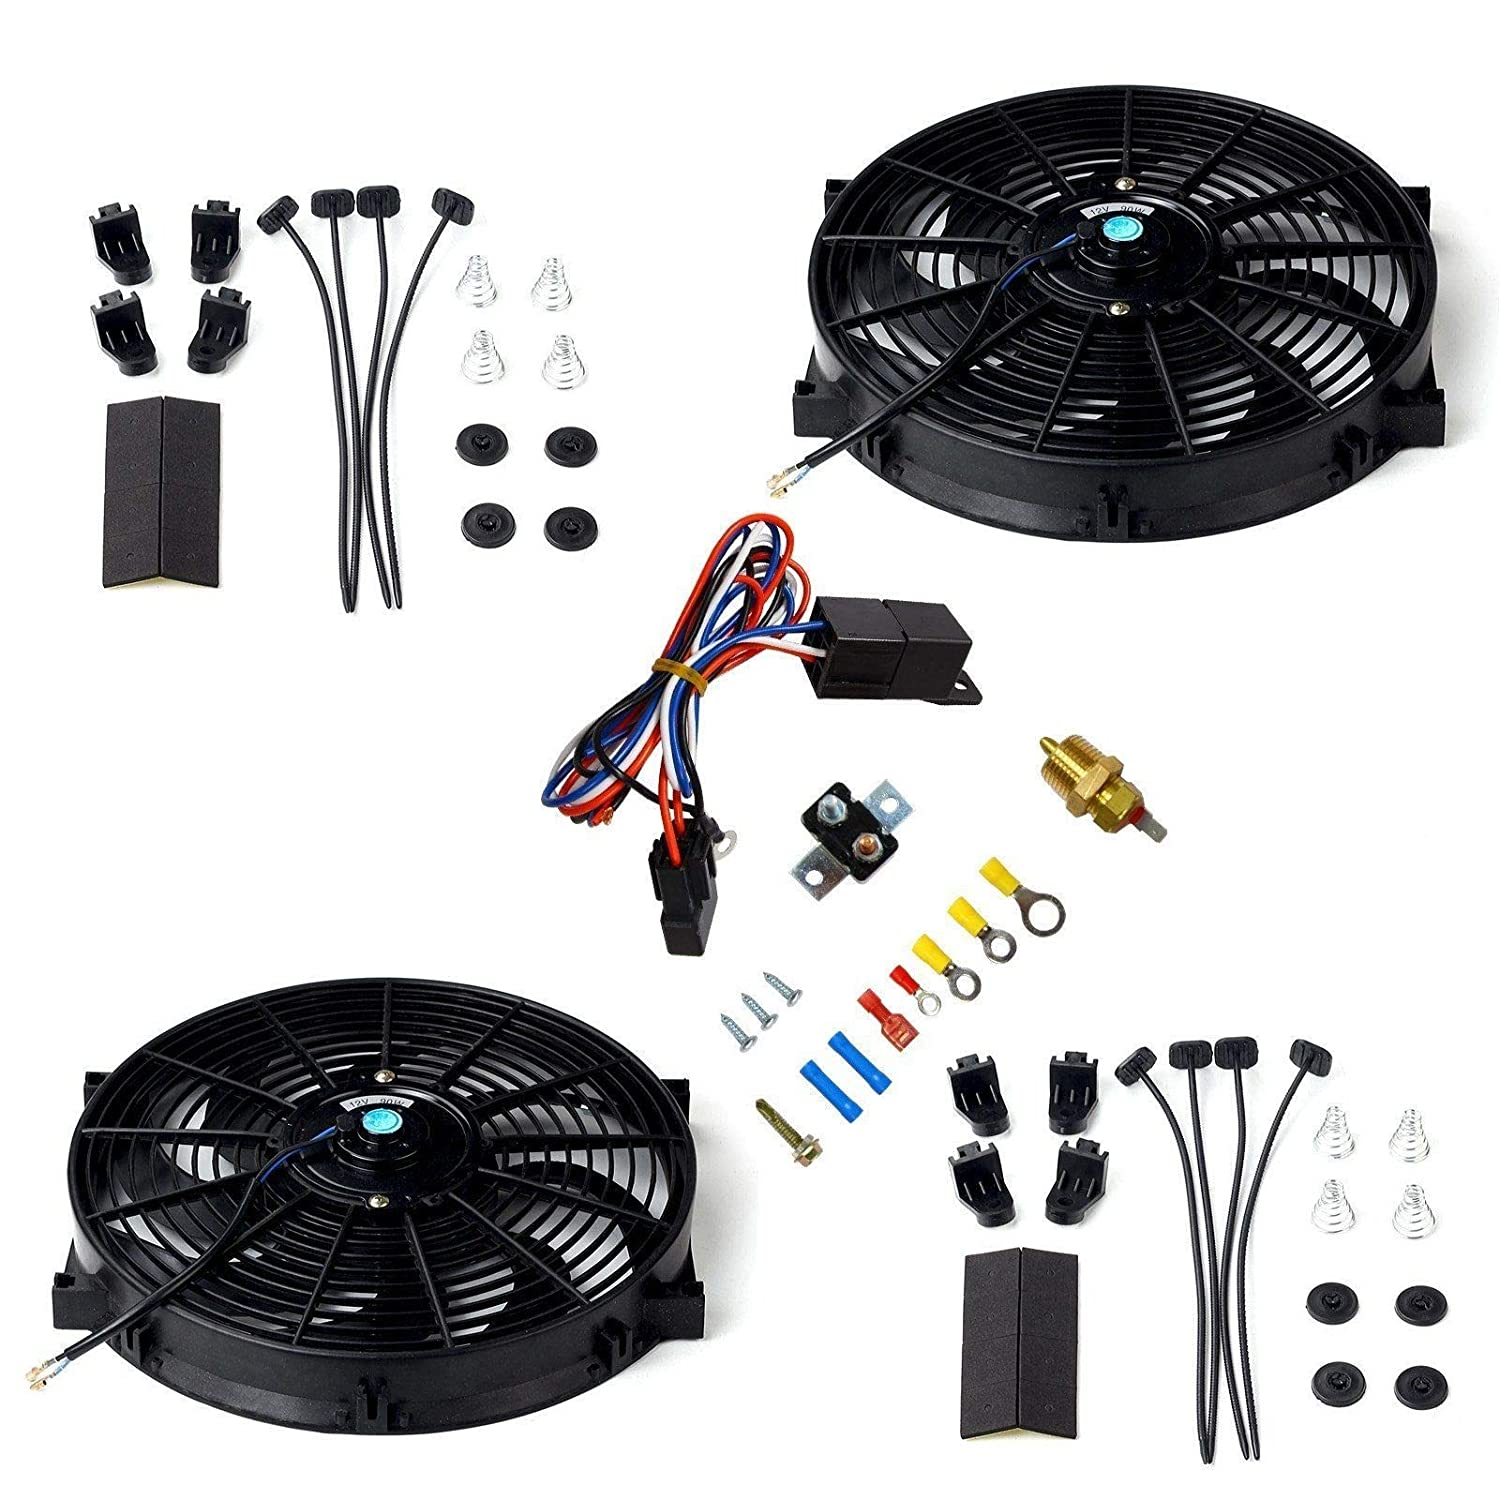 Mounting Kits Thermostat Relay Maxon Auto Corporation Red 2X 12 Universal Electric Cooling Fan Push Pull Electric Radiator Slim Fan